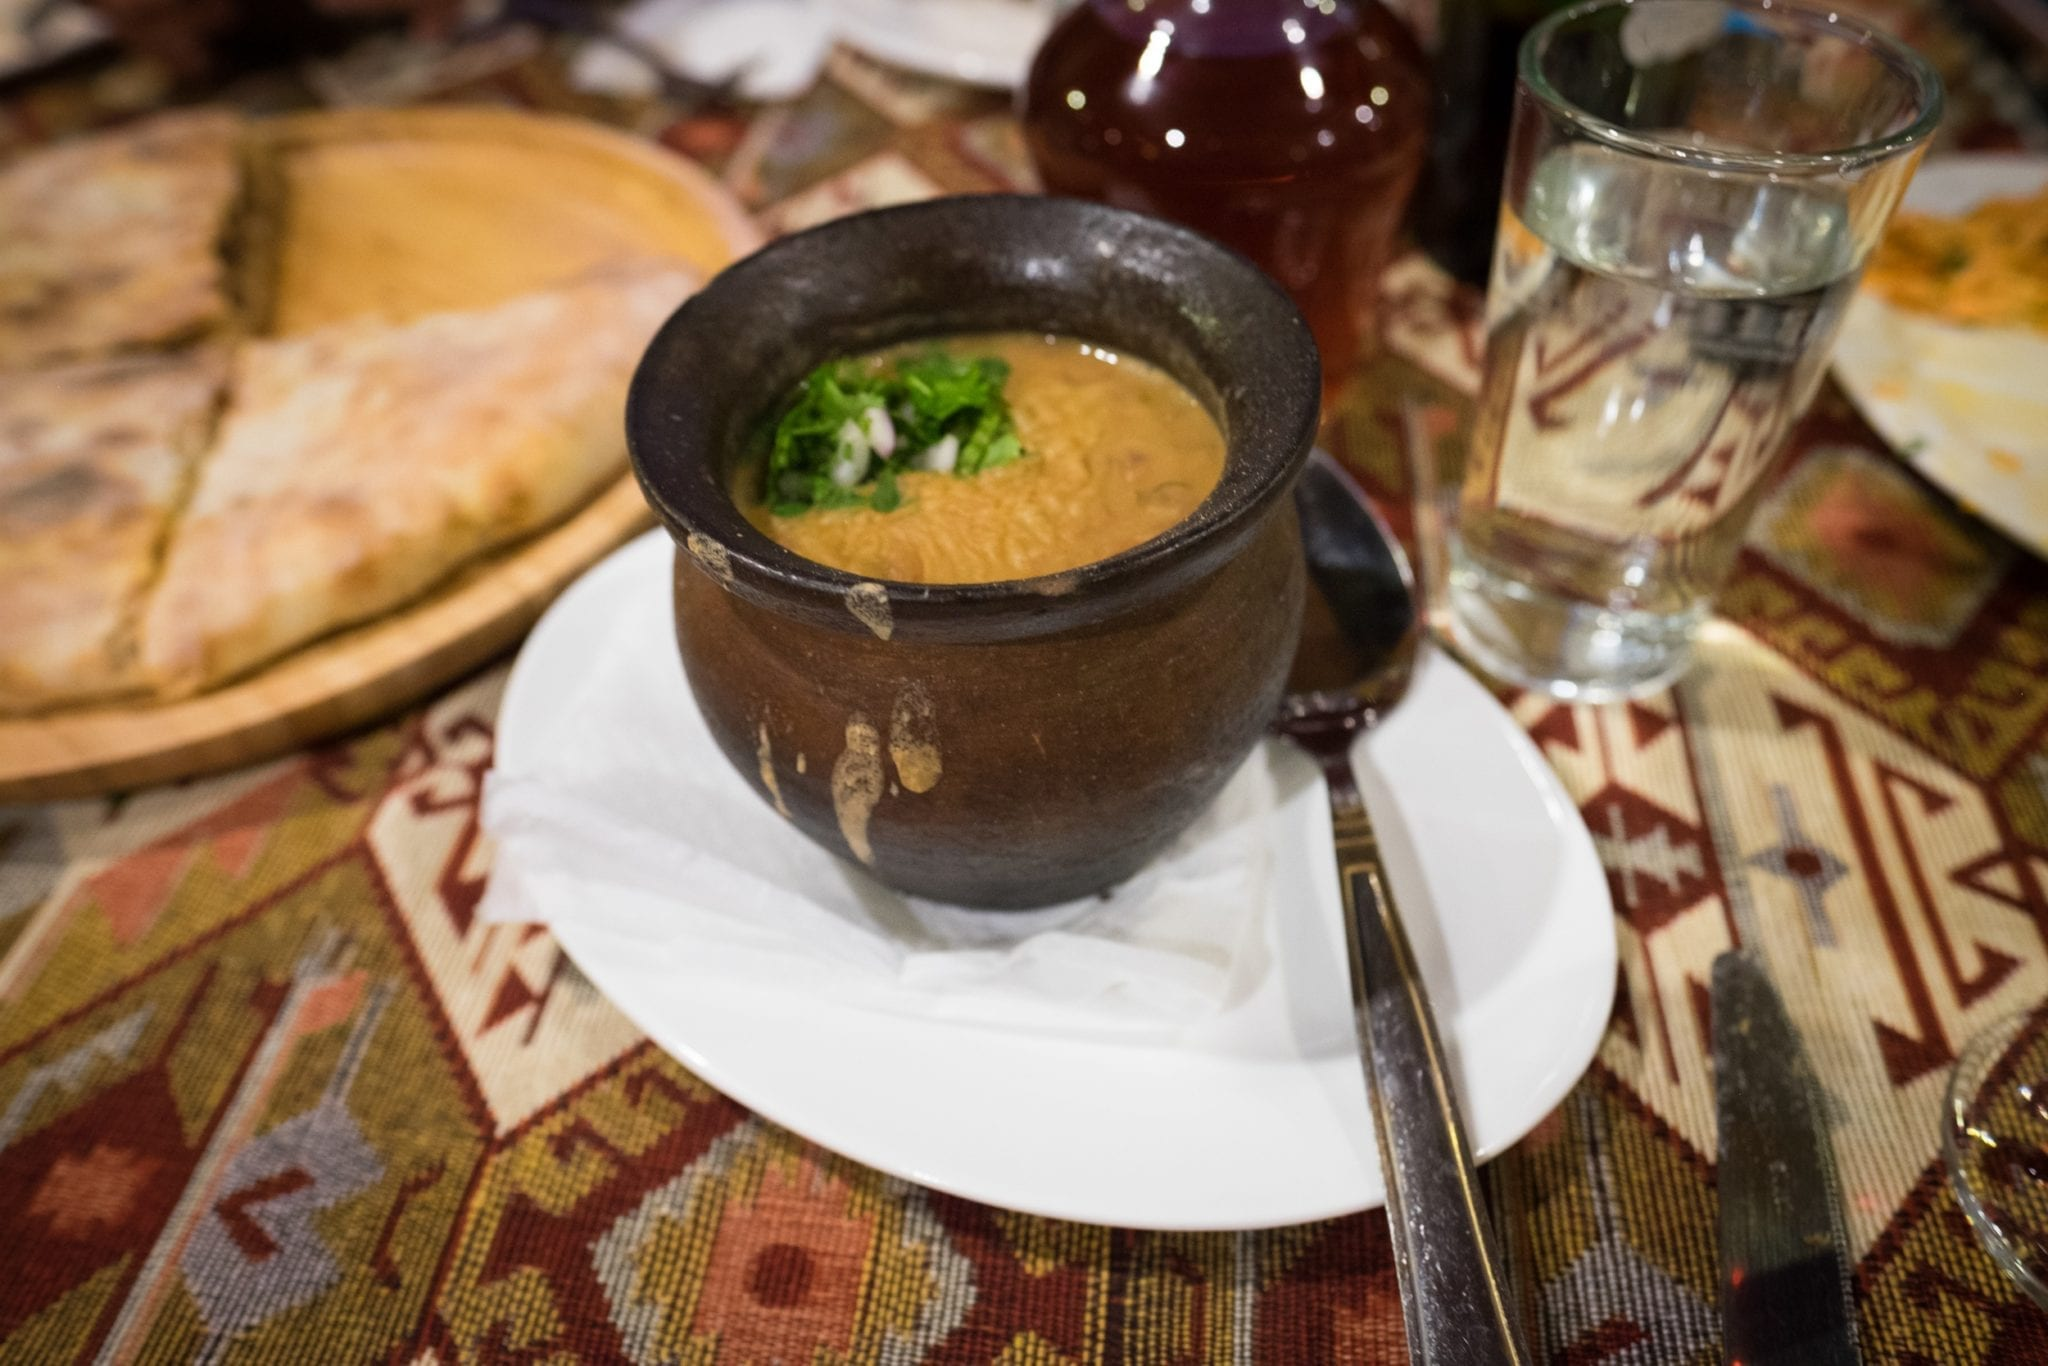 A dark brown vase-like bowl filled with lobio, Georgian stewed beans, sitting on a white plate.